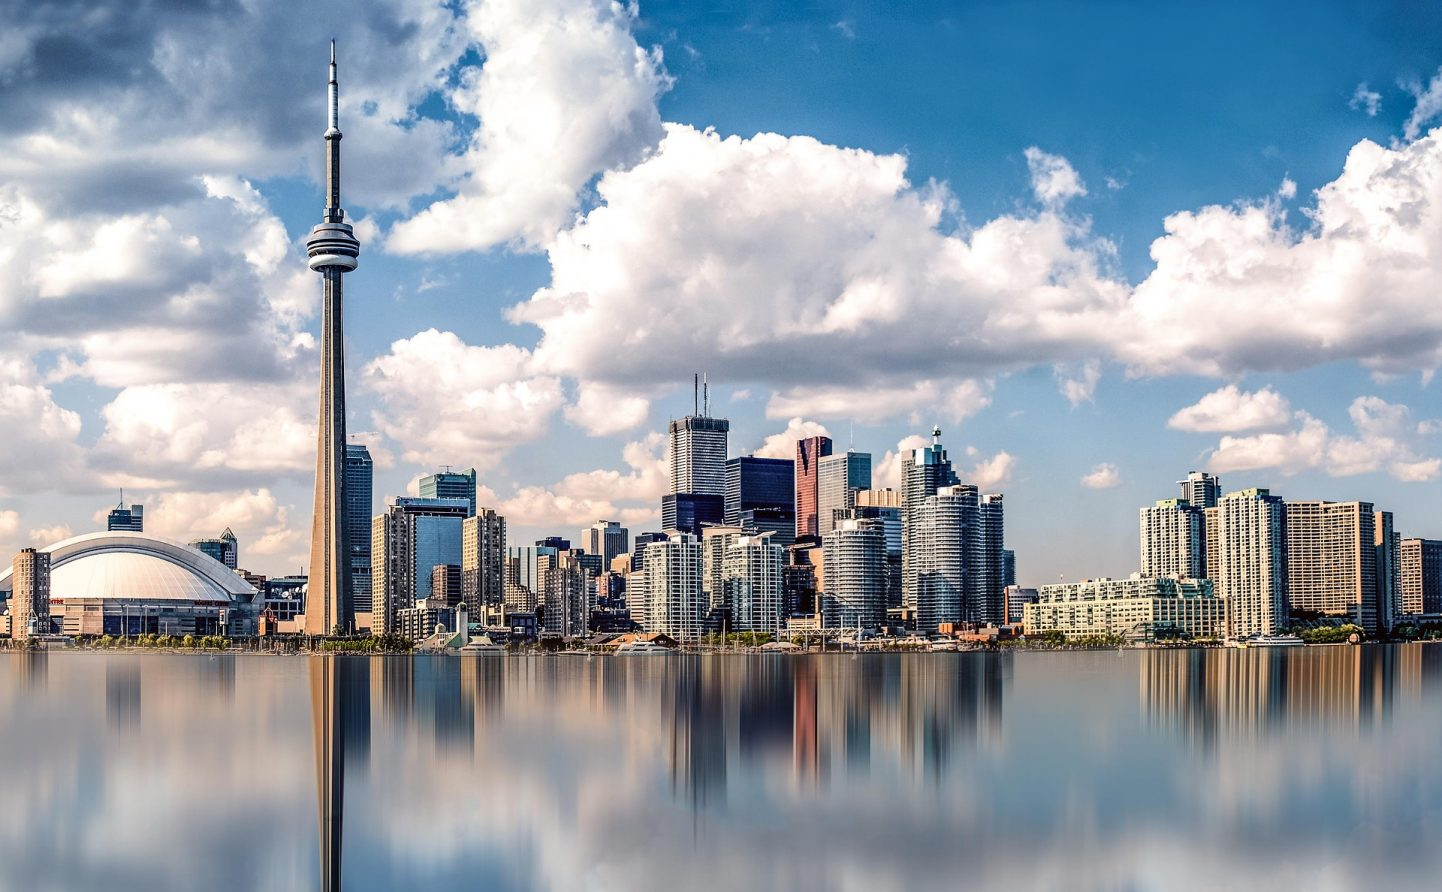 RISE IN TORONTO REAL ESTATE MARKET!